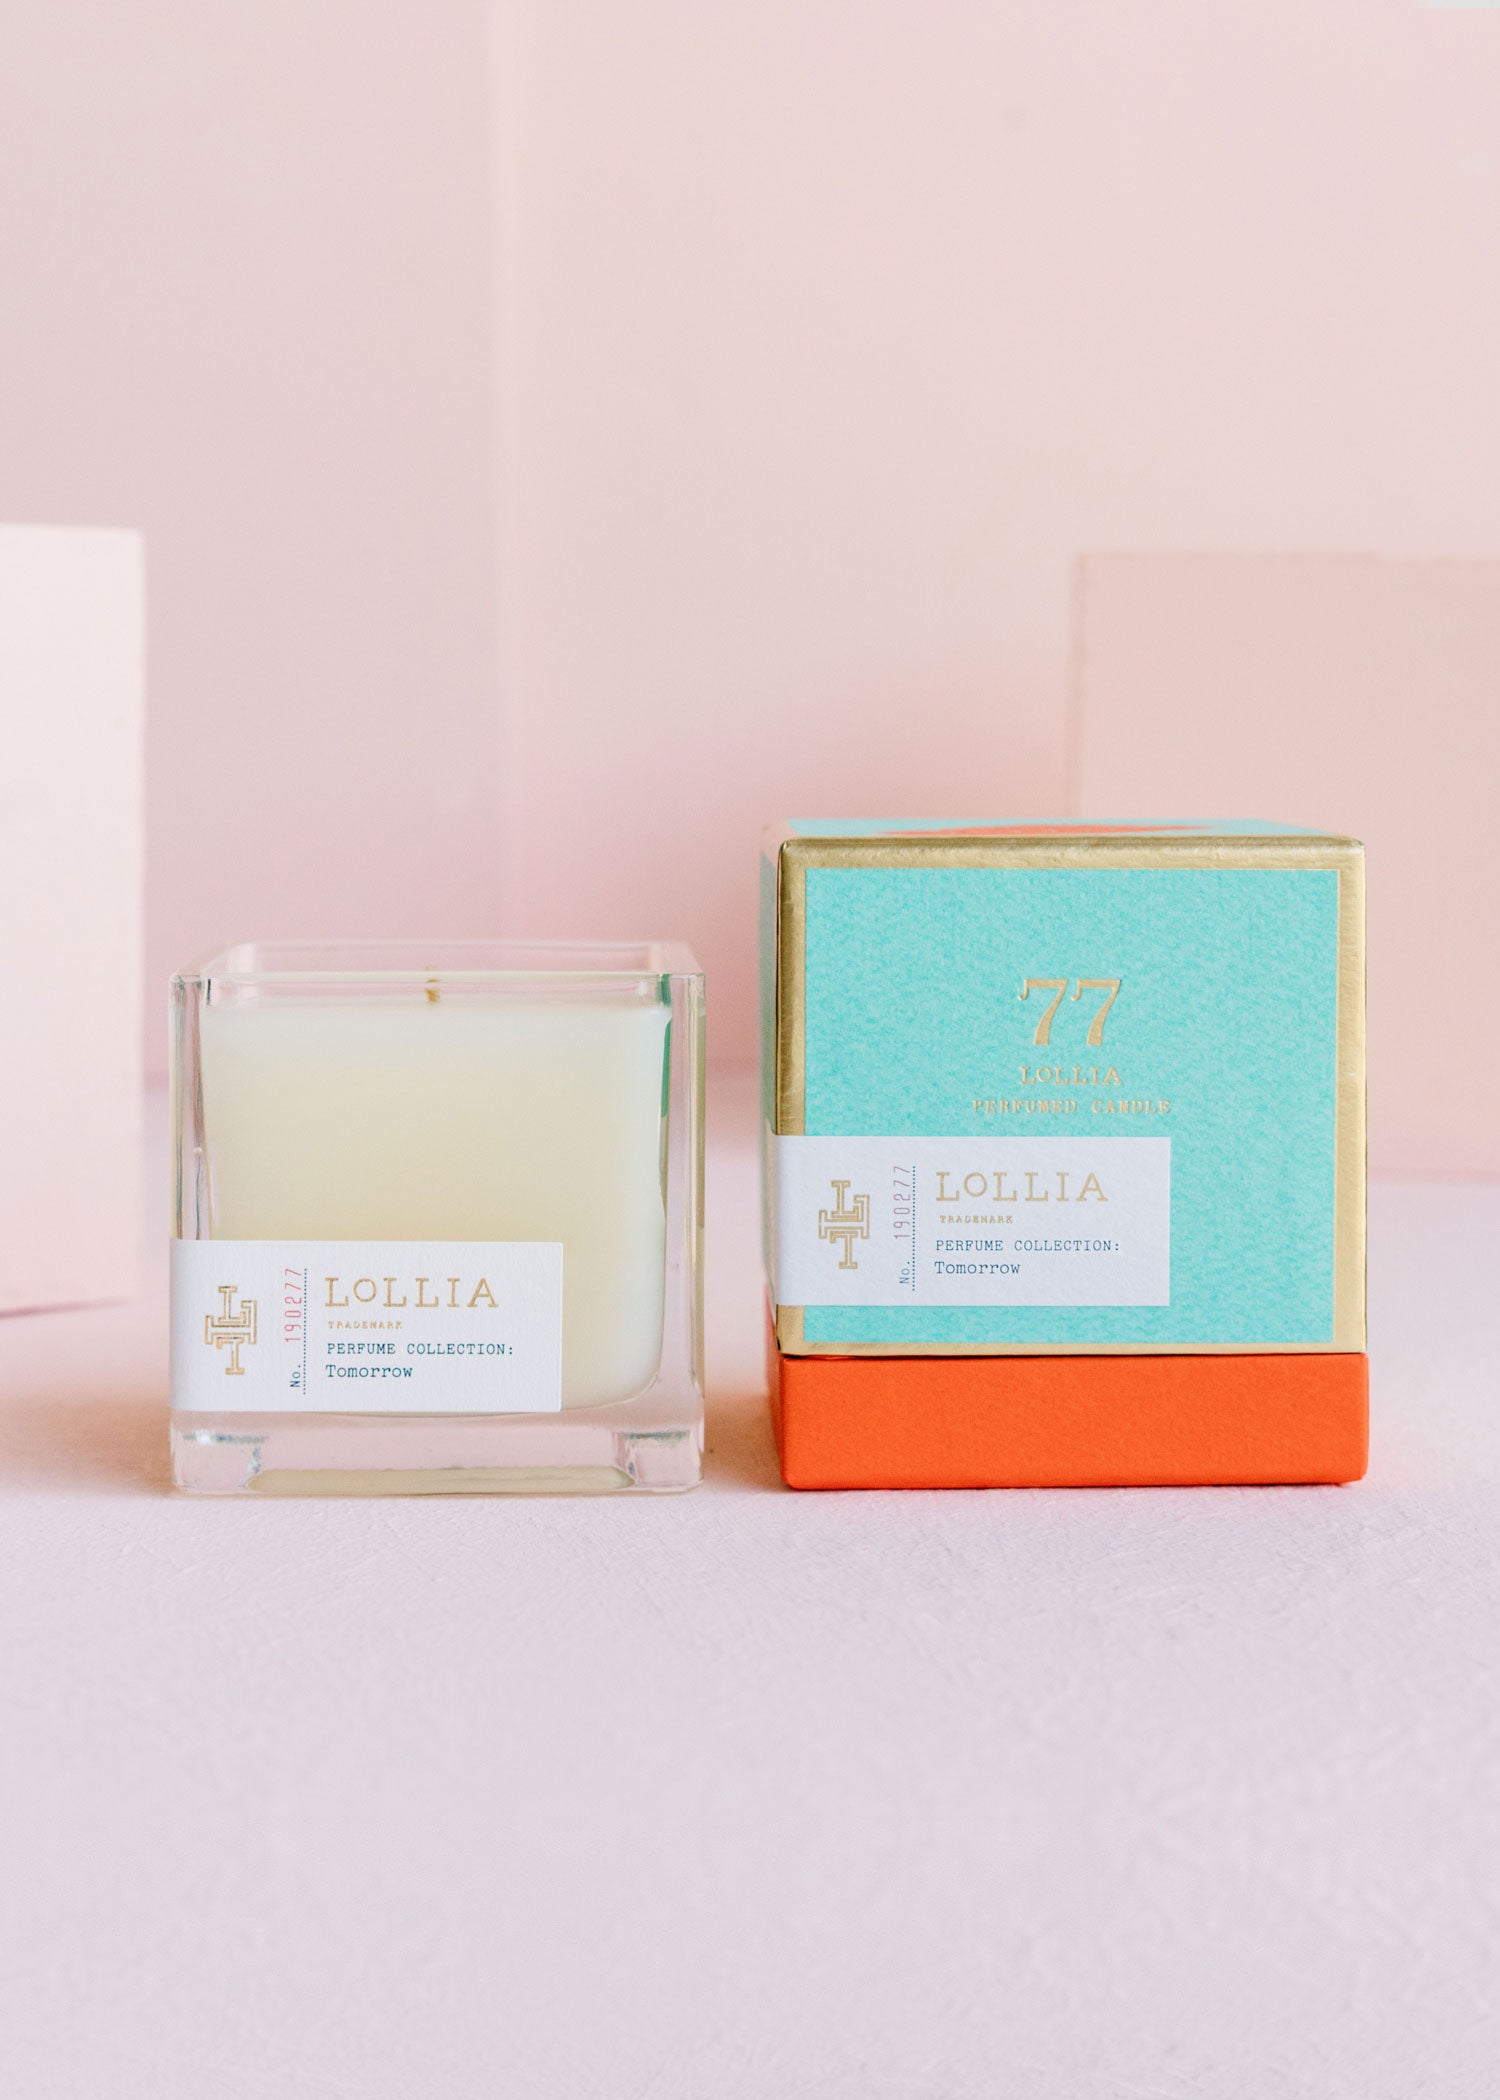 Score From The End Credits LOLLIA Poetic License Candle